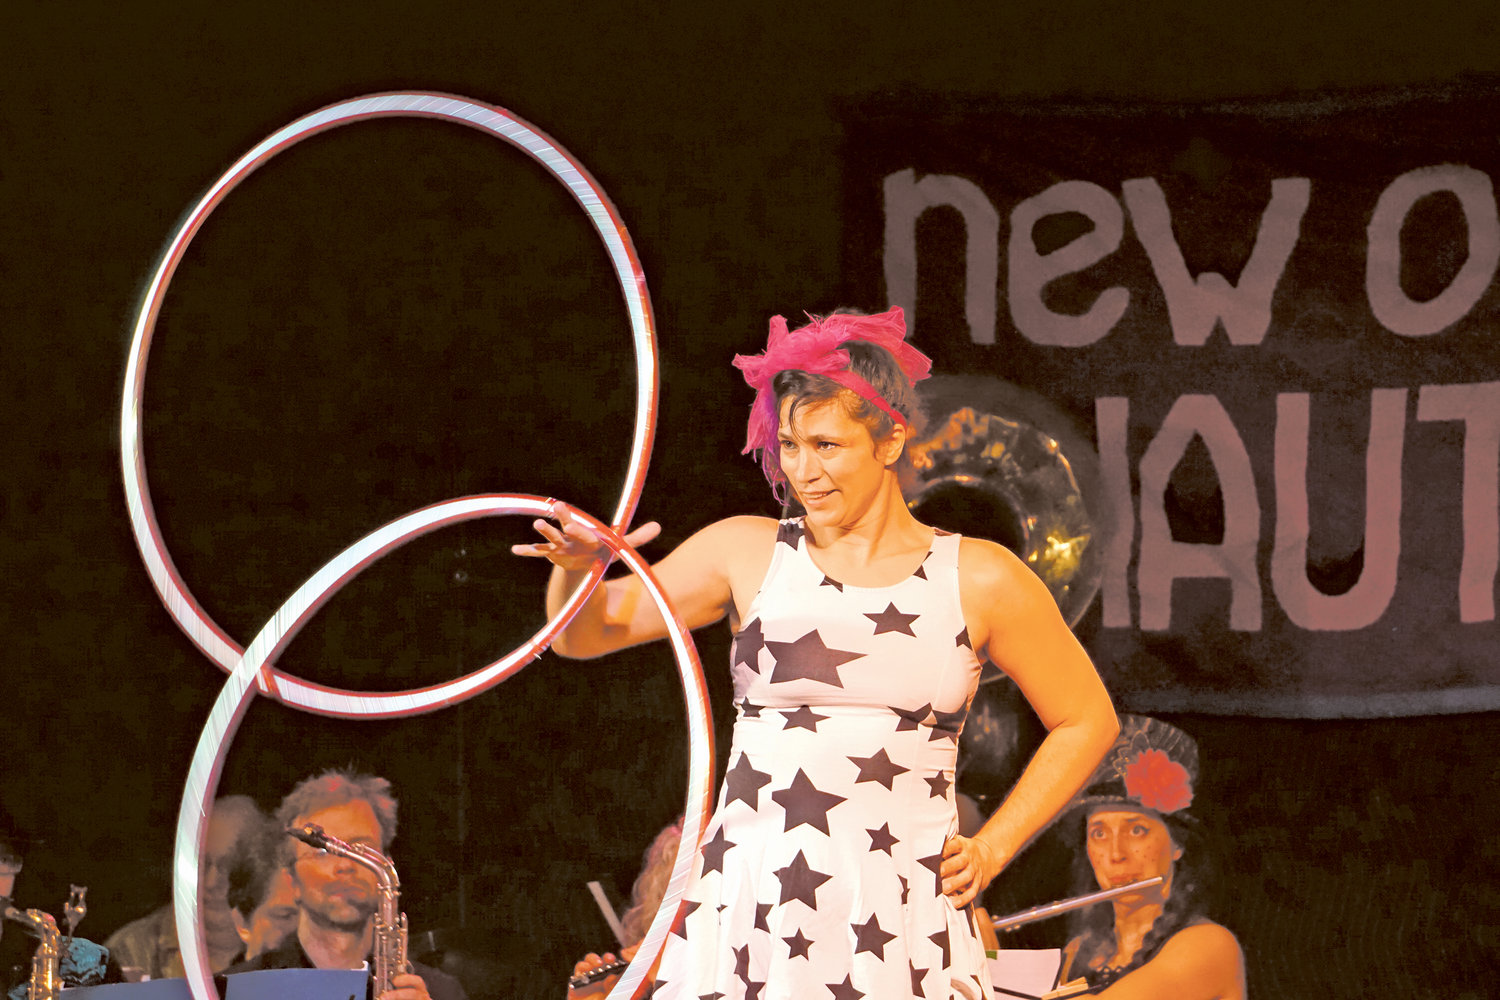 Vanessa Vortex performs hula hoop tricks during the New Old Time Chautauqua show in Port Townsend on Feb. 17.